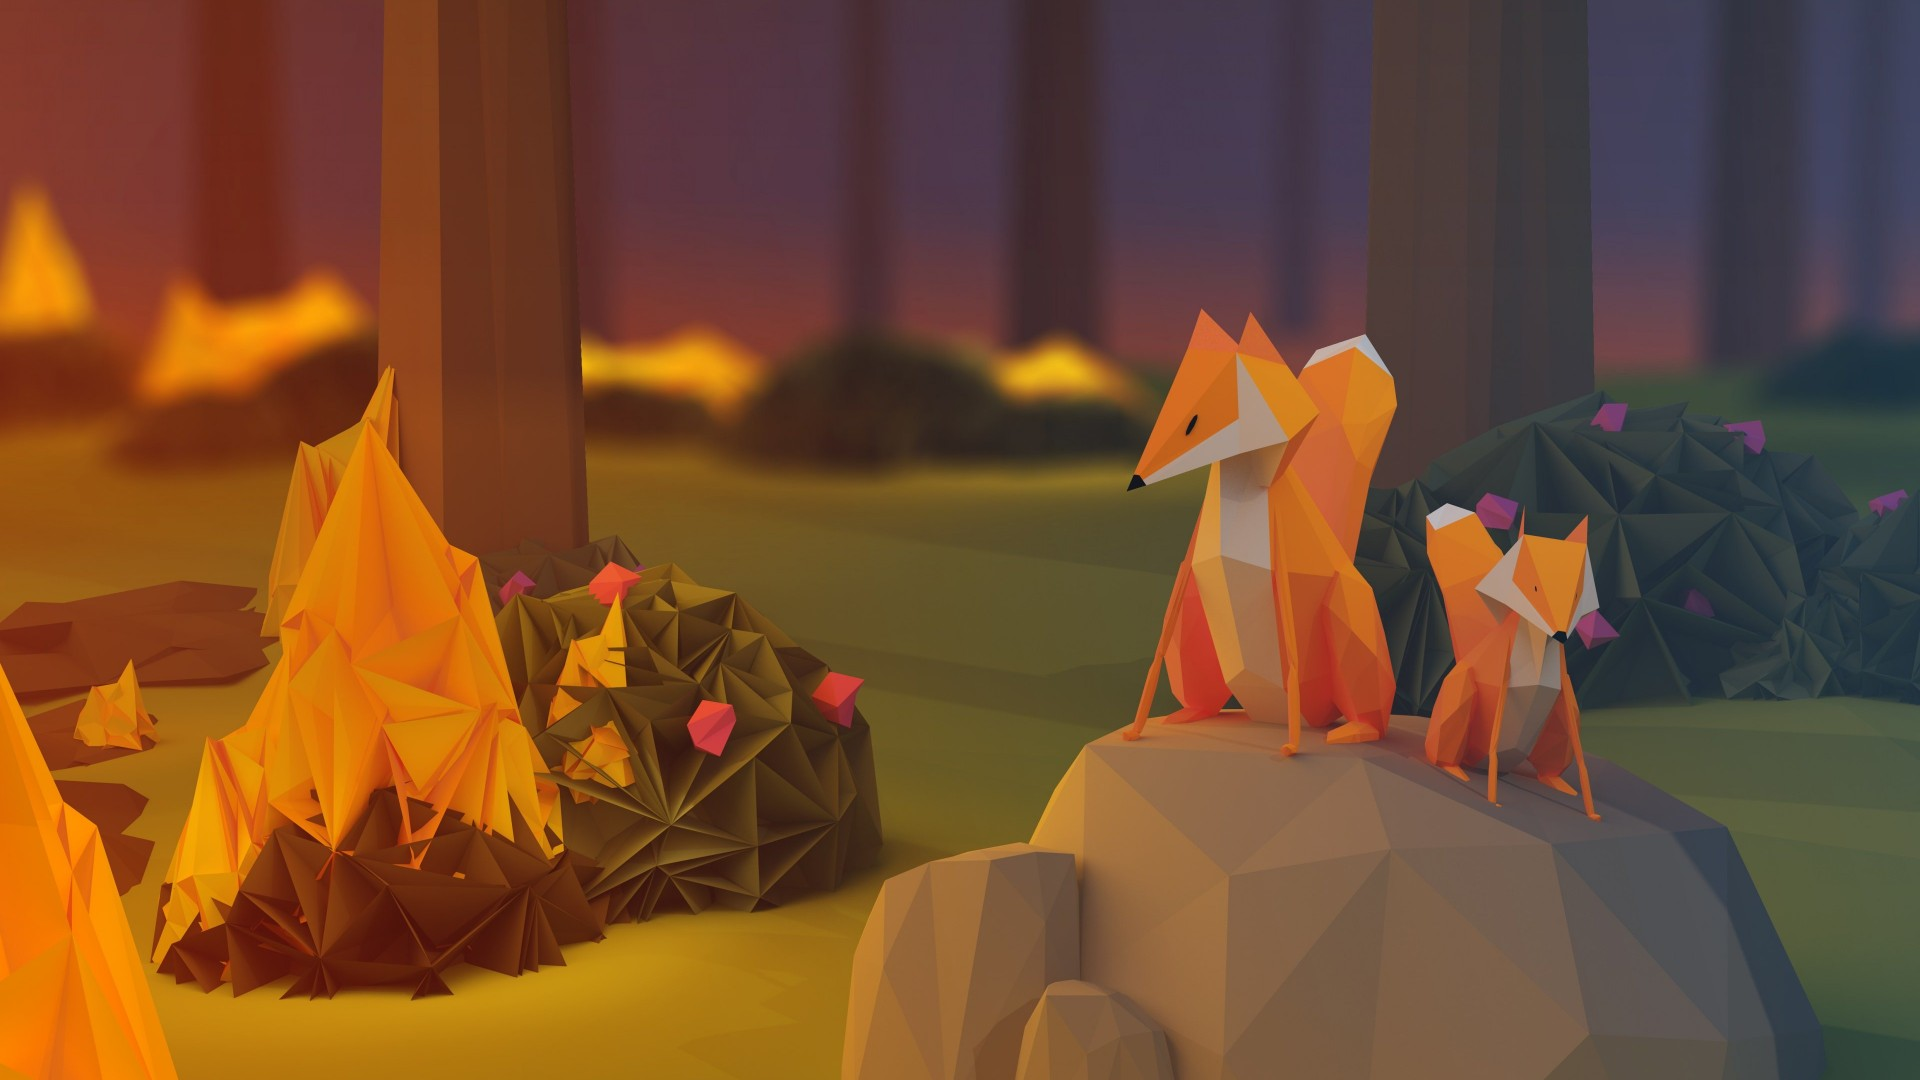 Low Poly Foxes Wallpaper for Desktop 1920x1080